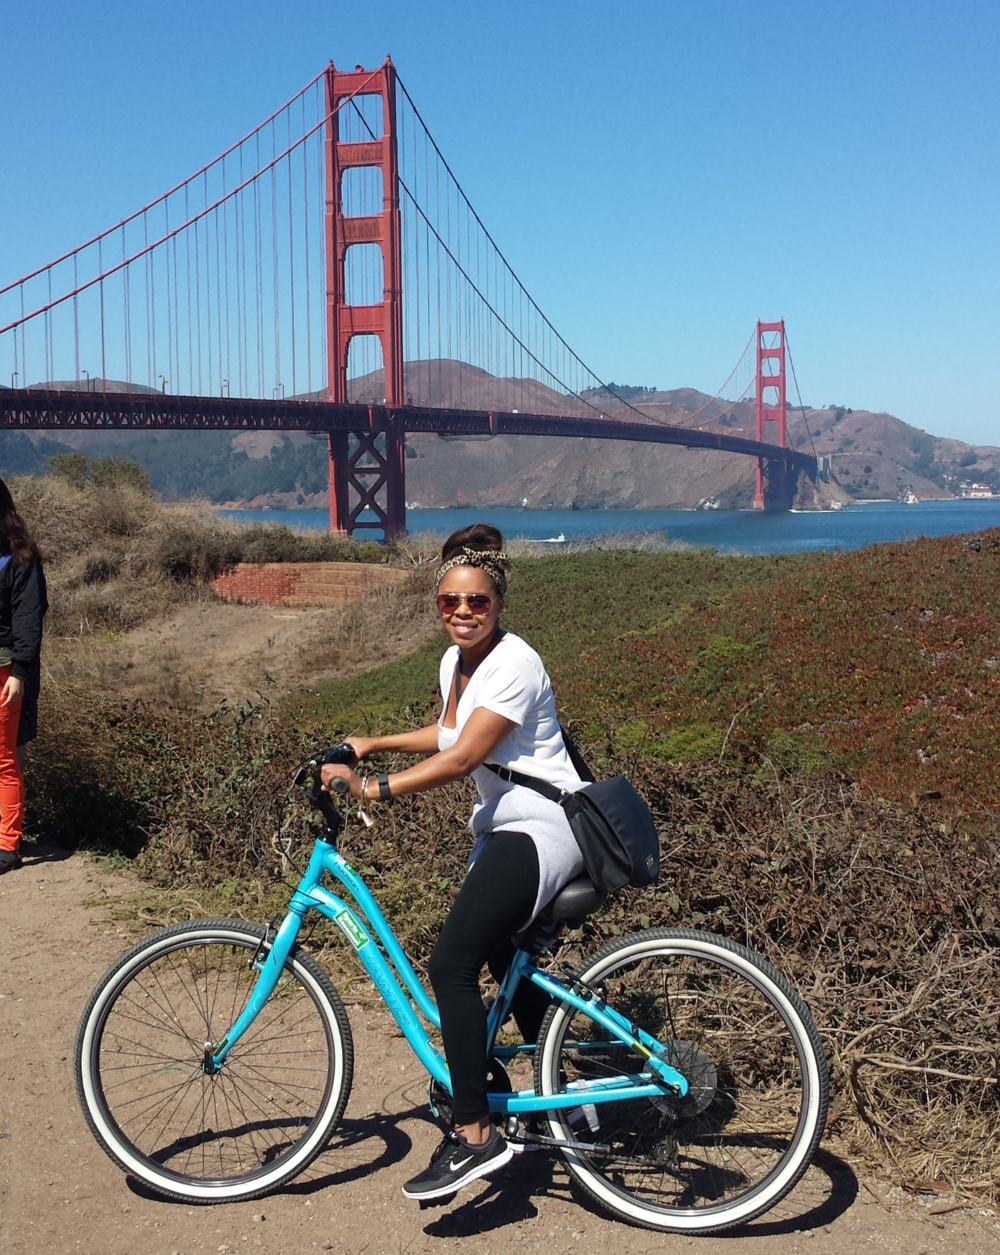 Rode across the Golden Gate Bridge. An unplanned 4 hours of walking and bike riding. Over 25,000 steps on my Fitbit that day